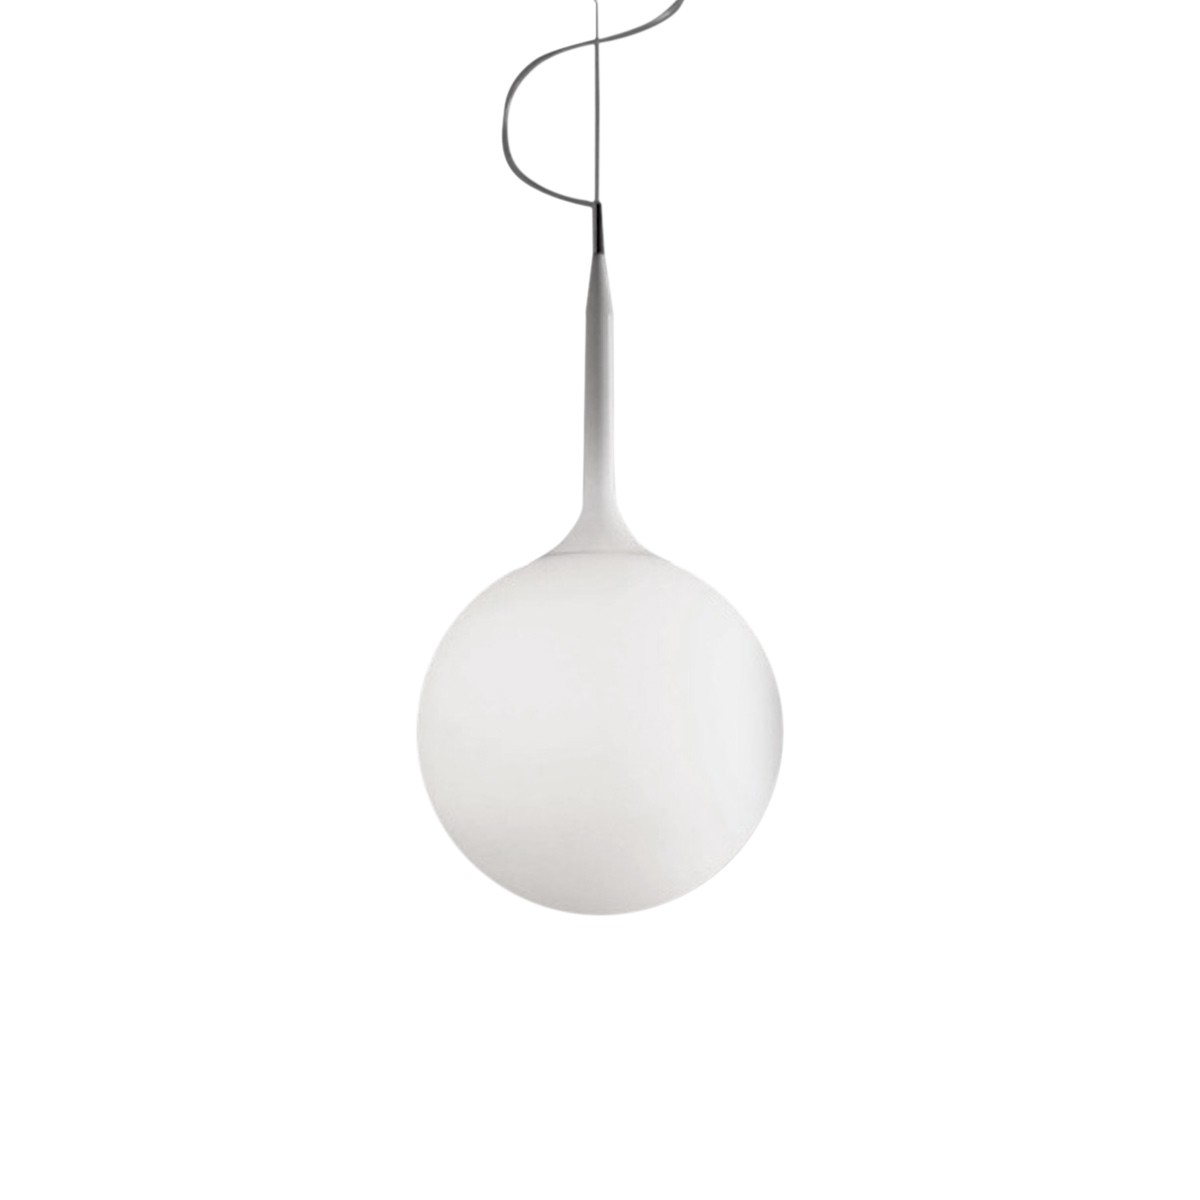 Castore Lampe à suspension 14 G9 48W Blanc